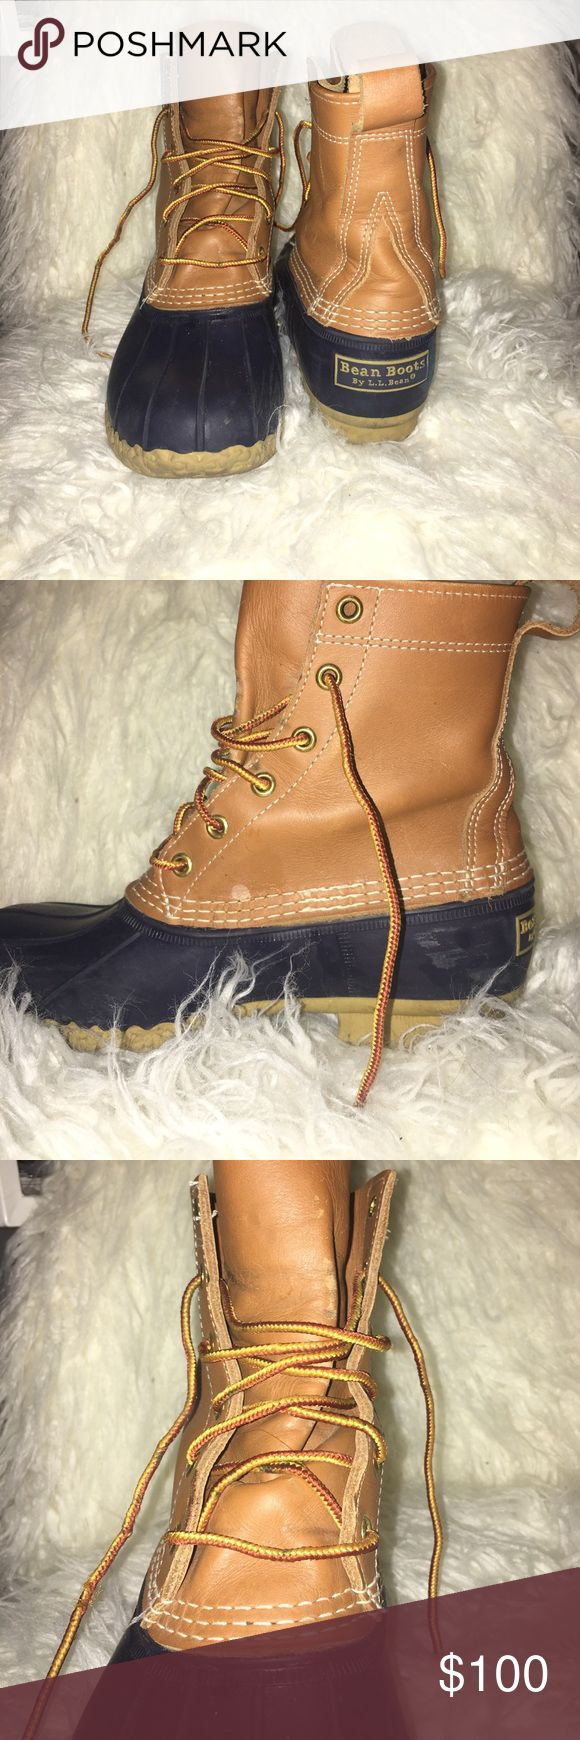 LL Bean Boots Women's size 8 LL Bean Boots. Worn only a few times. Very minor scuffs. Overall great condition. L.L. Bean Shoes Winter & Rain Boots